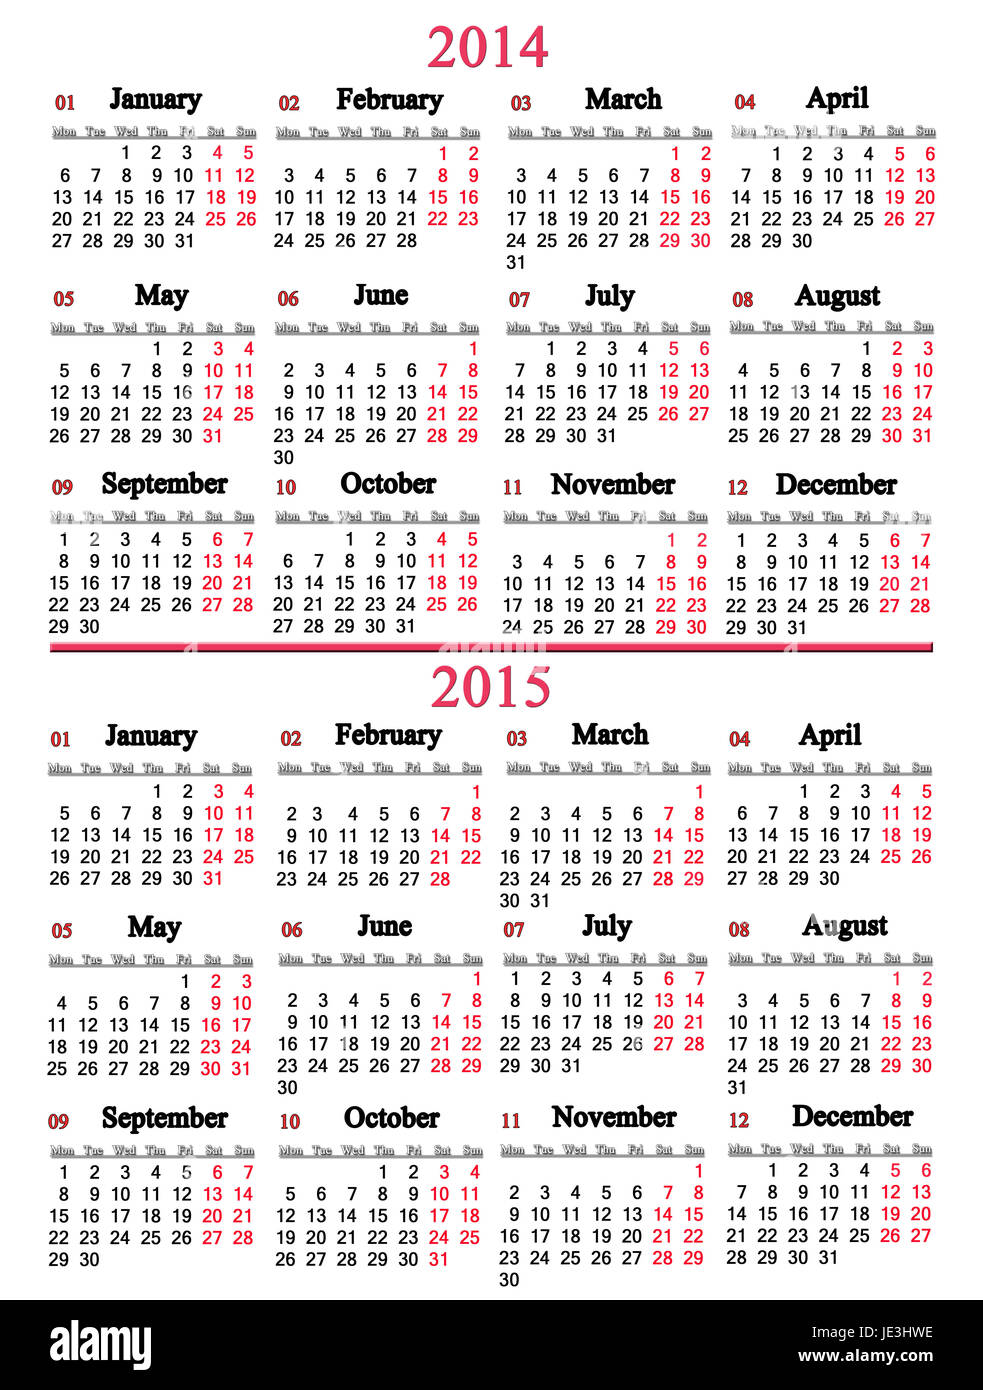 office calendar for 2014 - 2015 years on white background - Stock Image